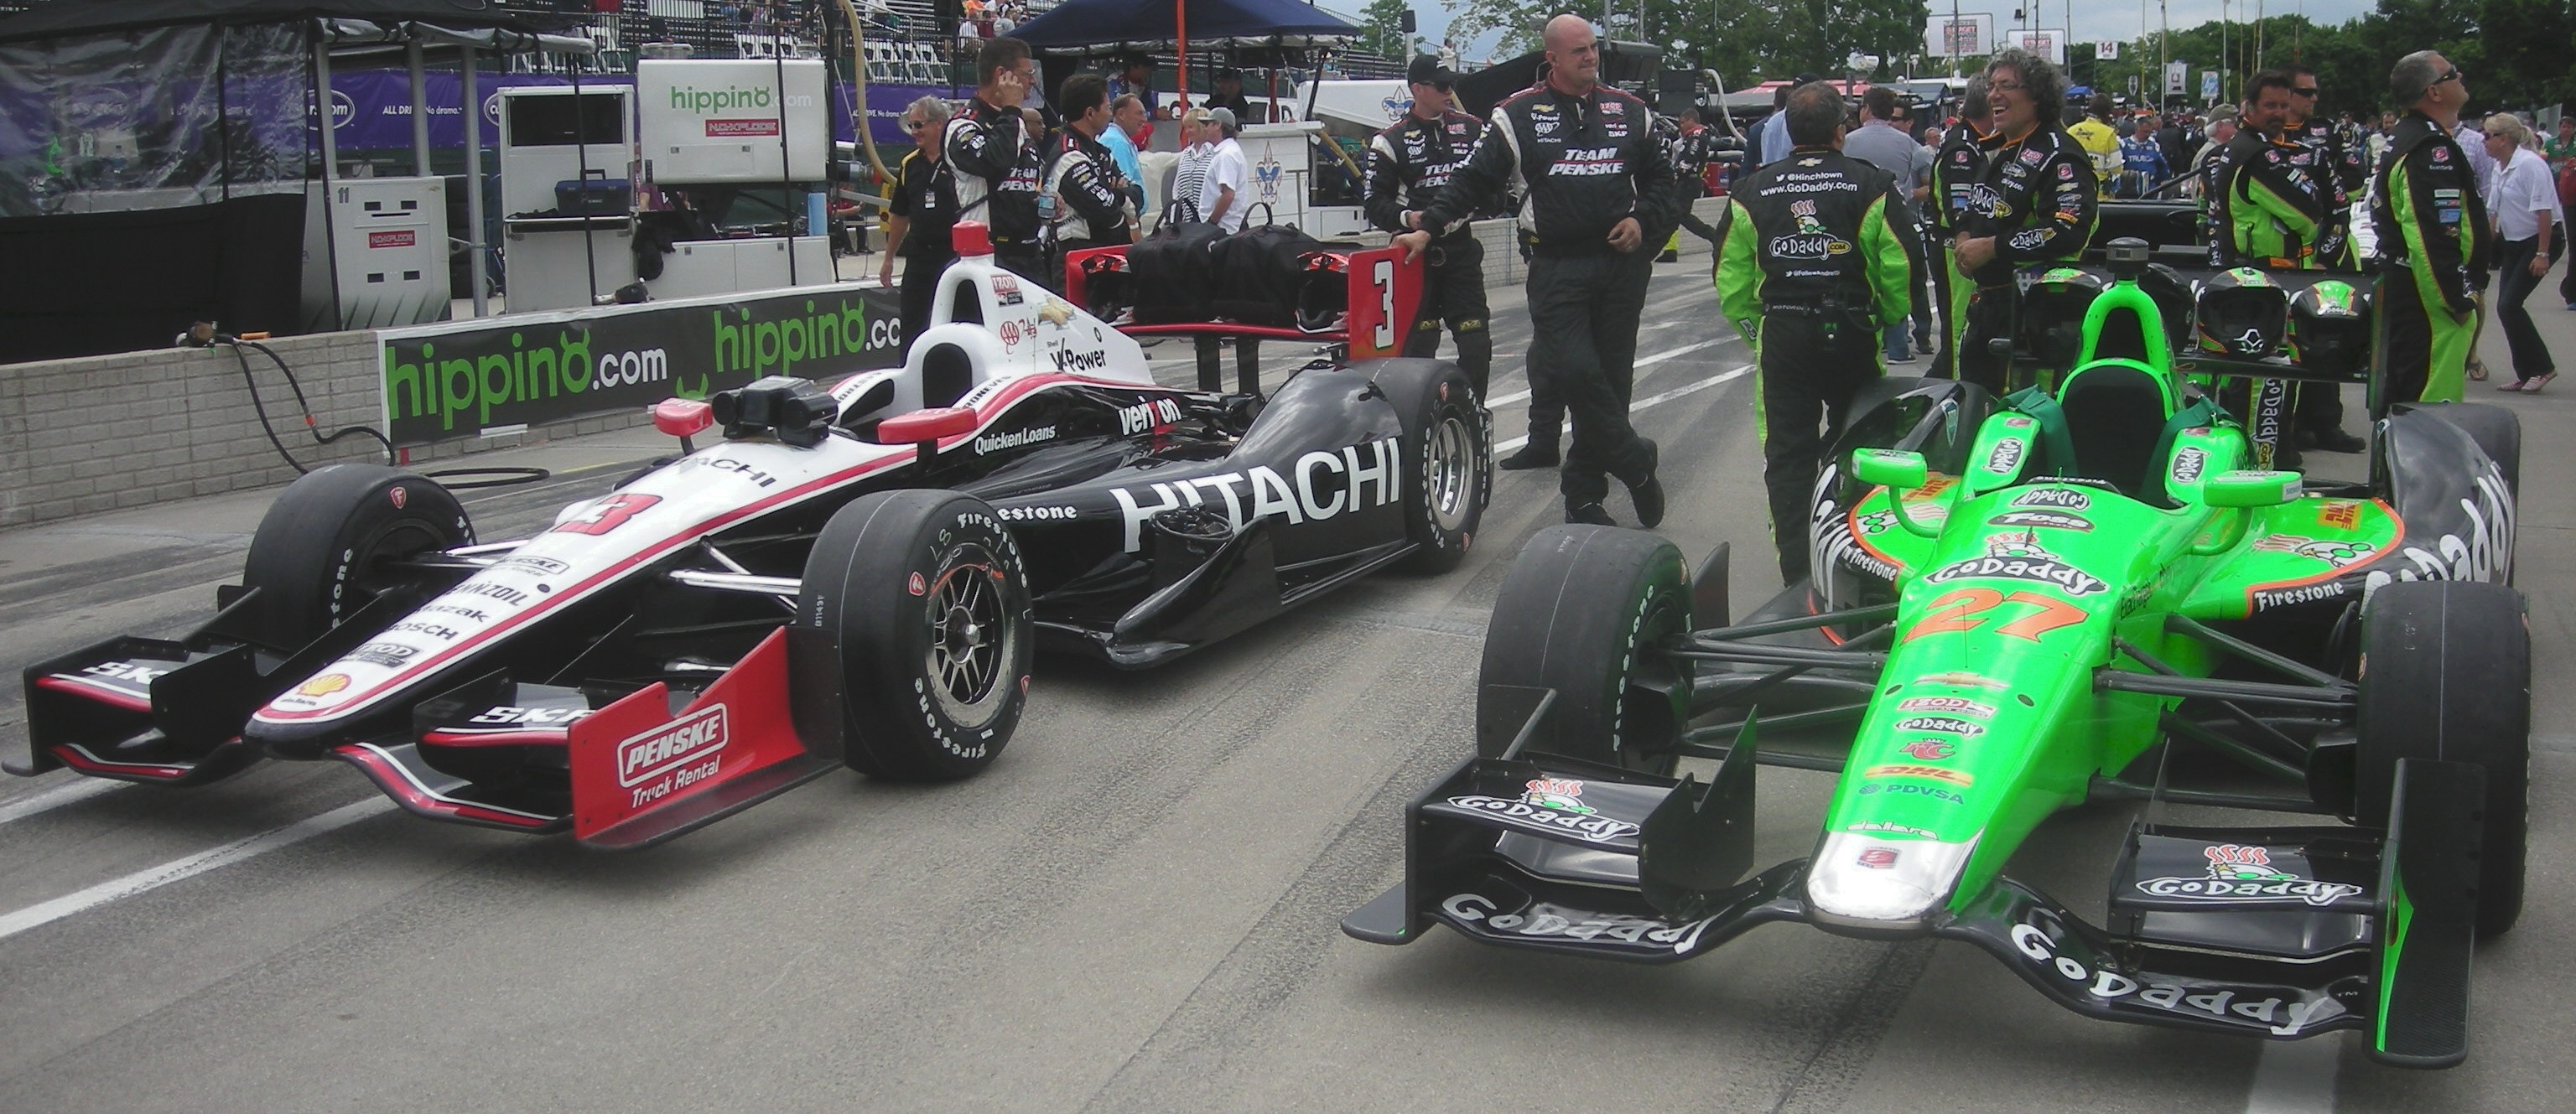 Helio Castroveves' #3 and James Hinchcliffe's #27. Same cars, different colors.